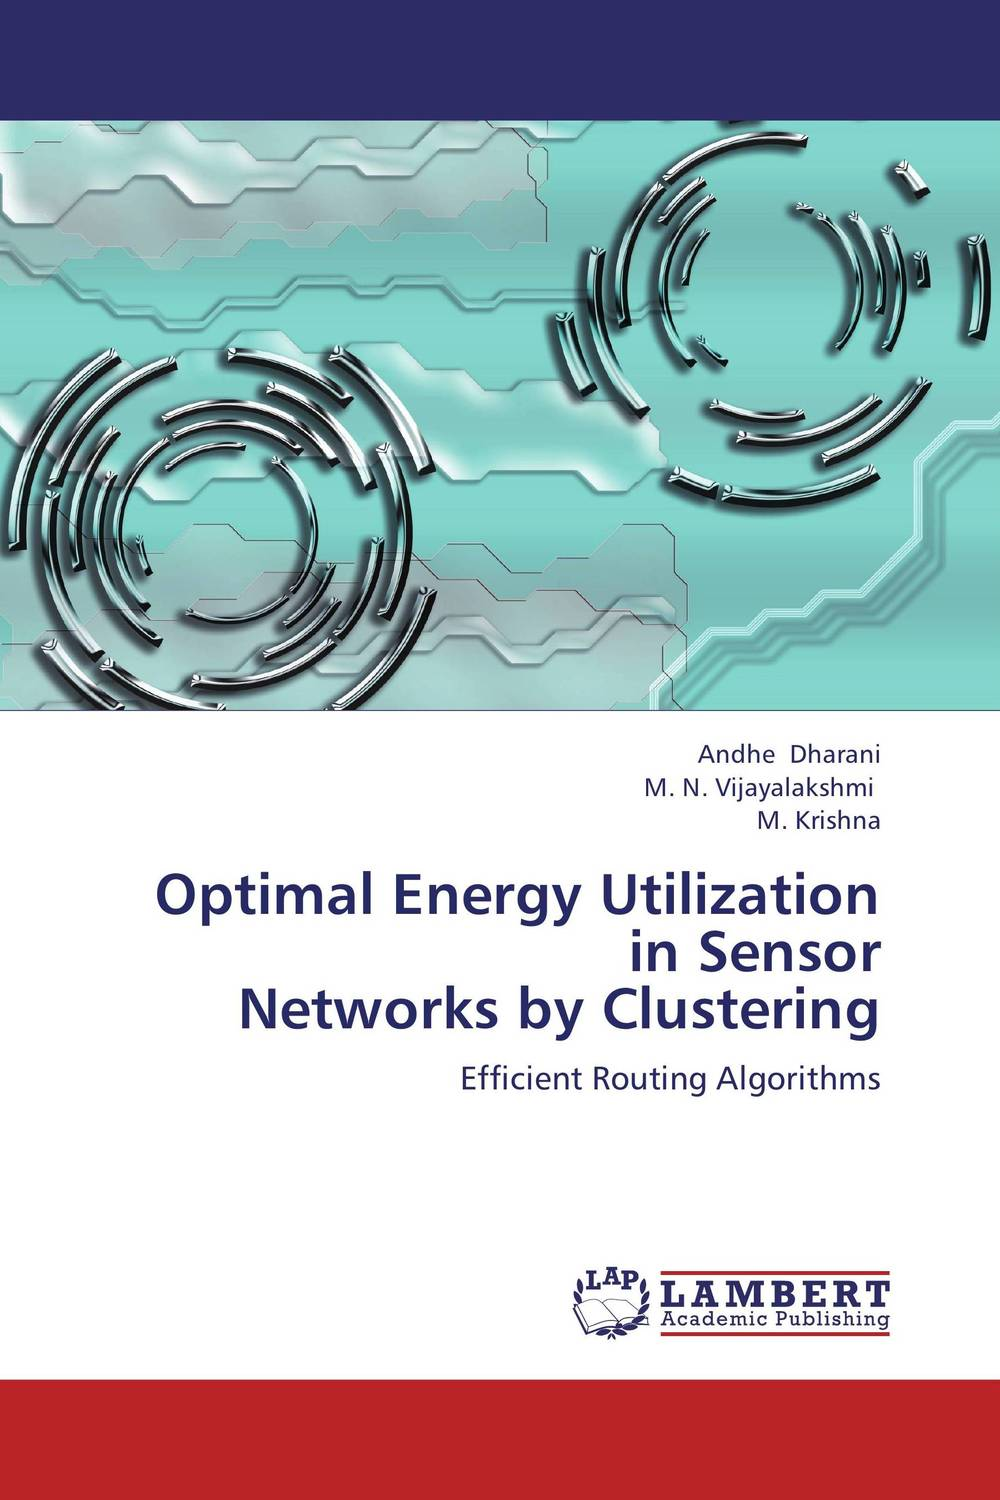 Optimal Energy Utilization in Sensor  Networks by Clustering social networking mindset and education